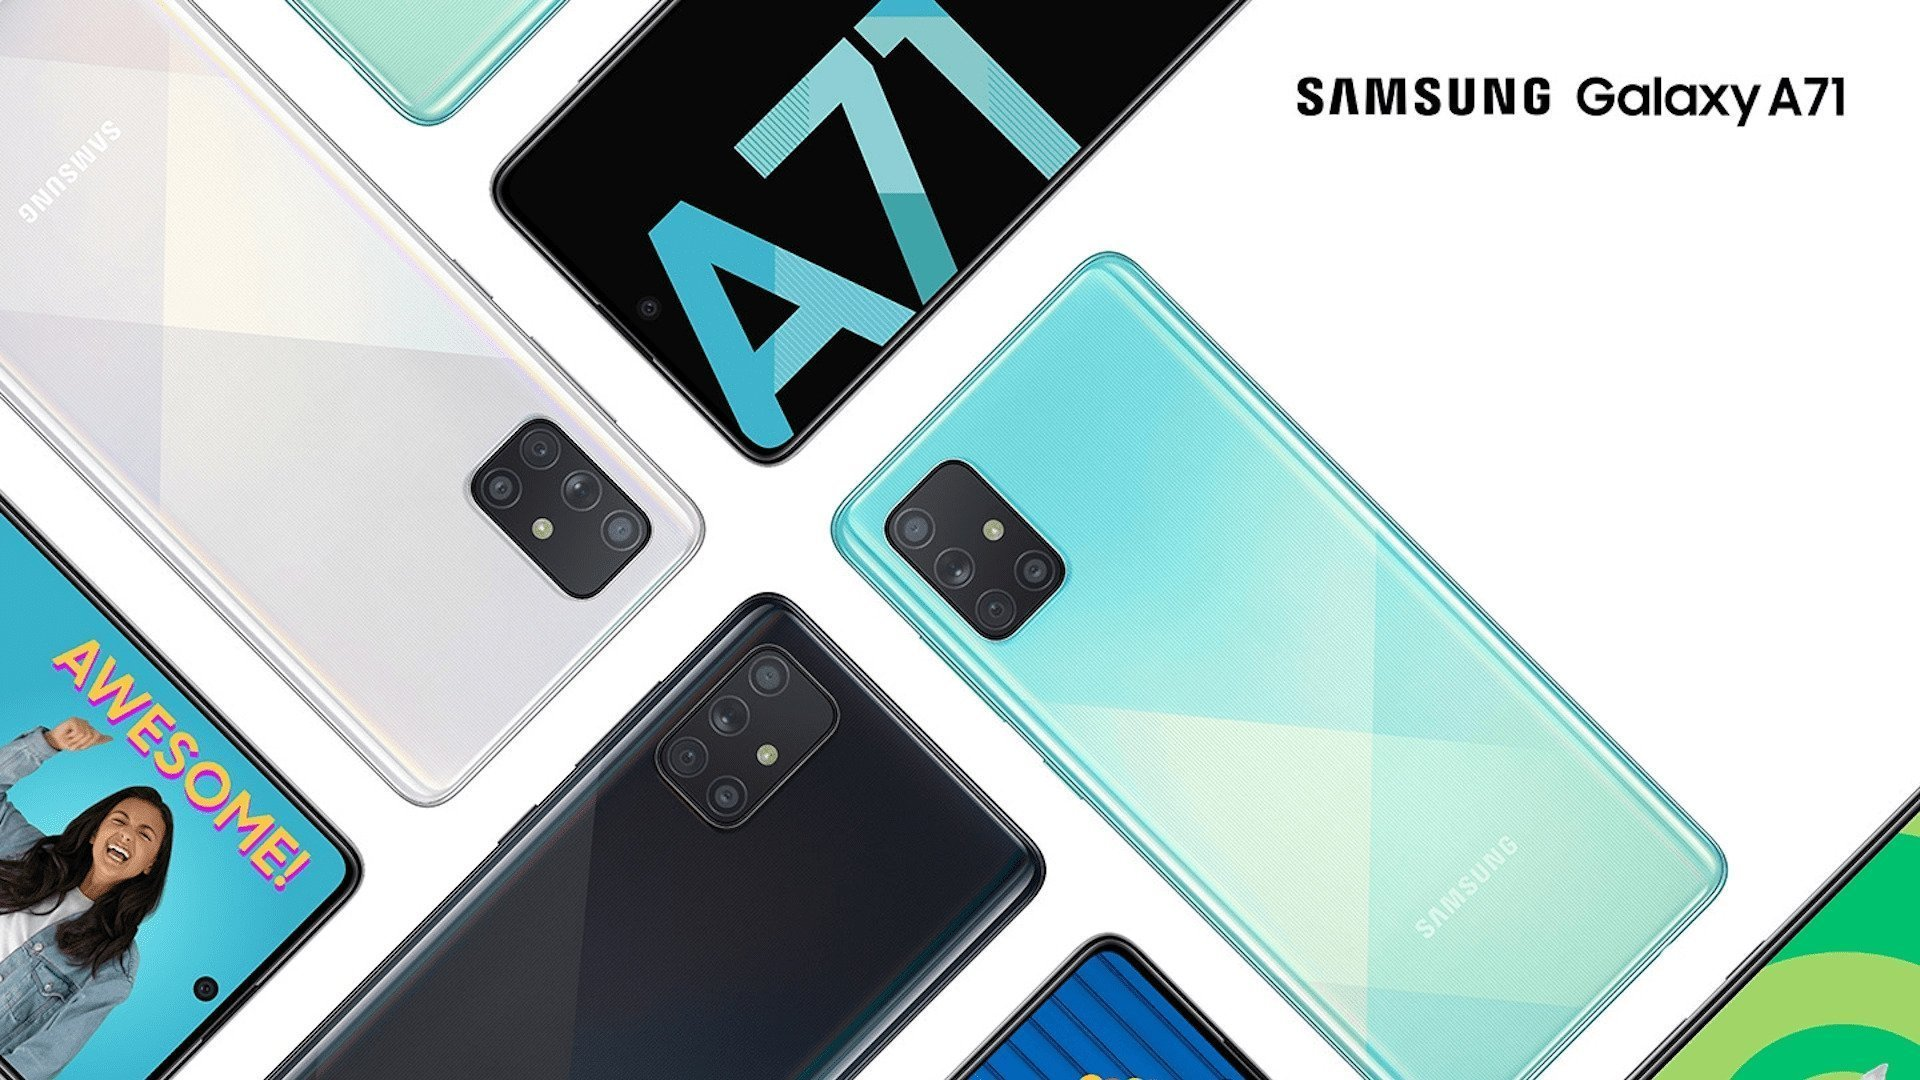 Samsung Galaxy A71 5g And Galaxy A31 Are Officially Launched In Australia Prime Inspiration